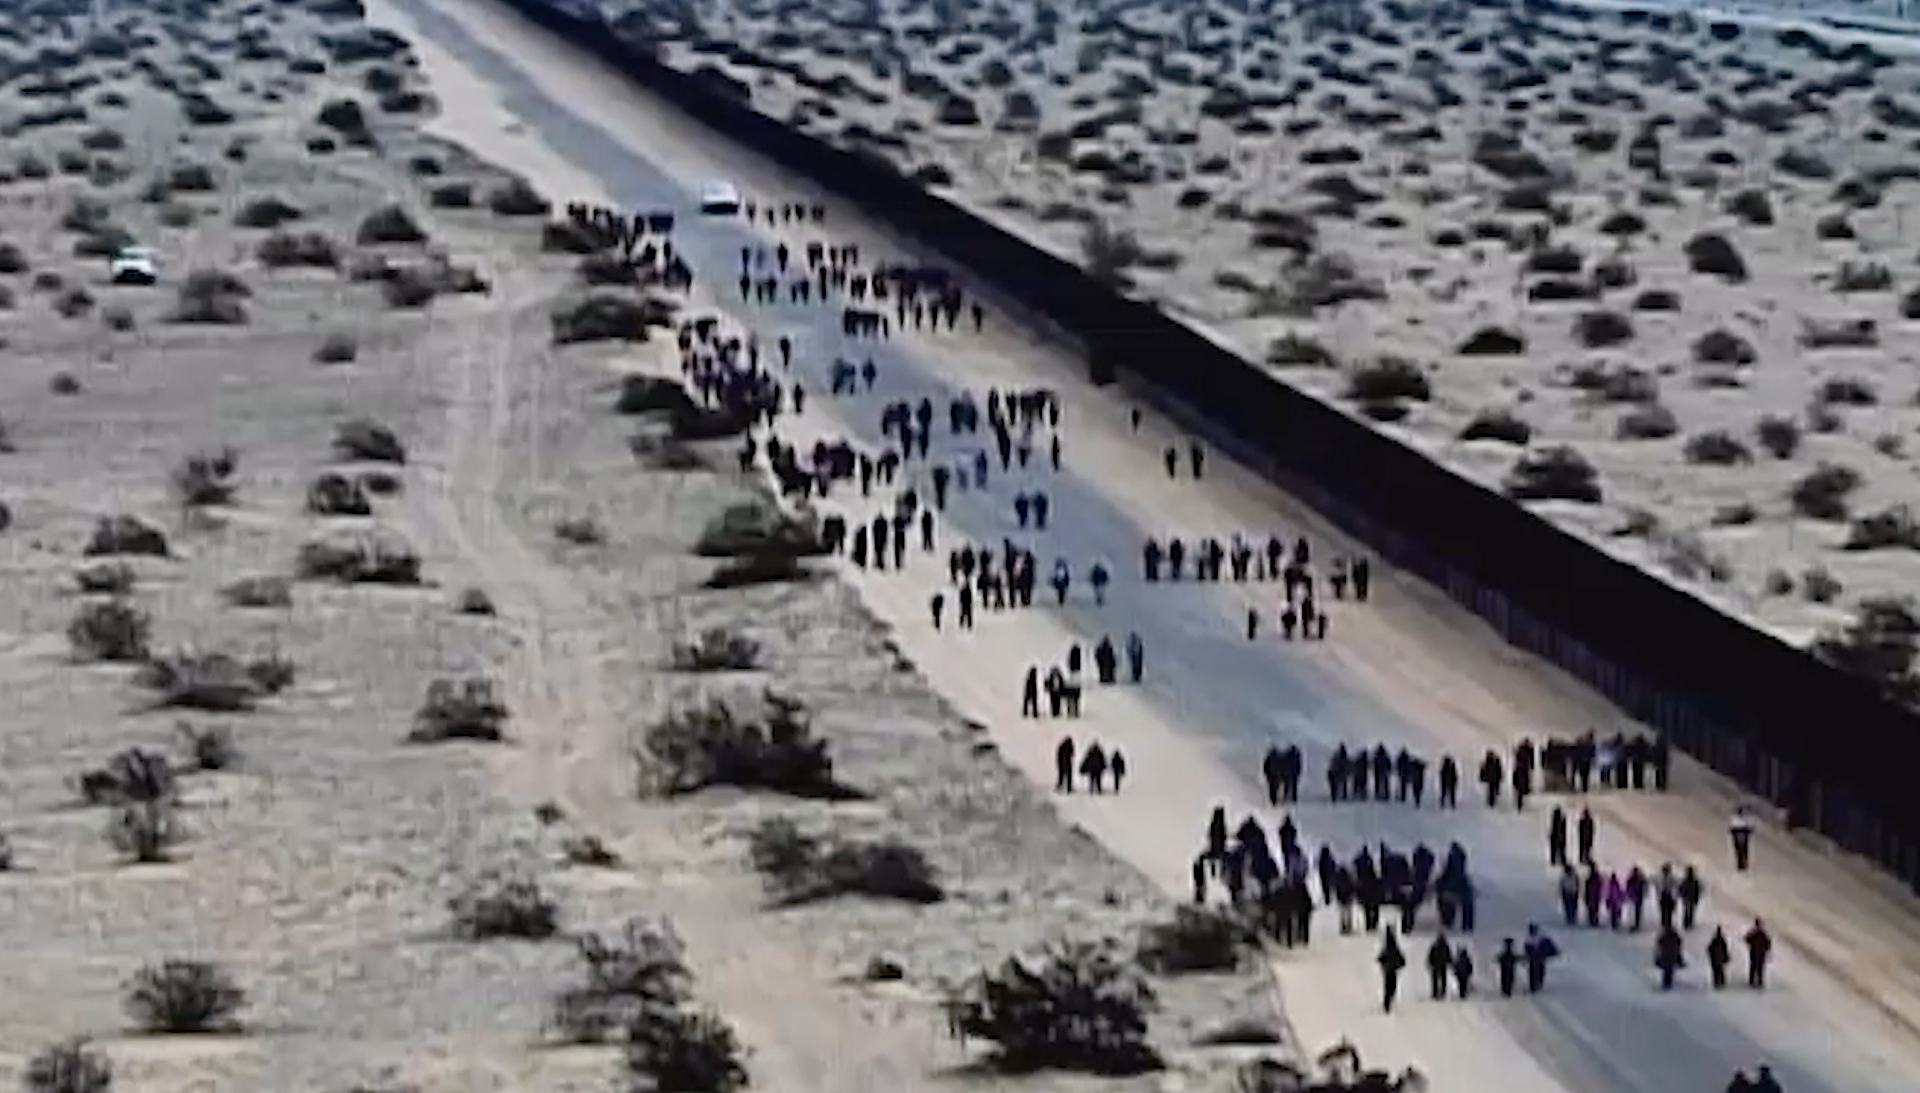 """This frame taken from video shows a large group of migrants arriving at the U.S. border, part of what U.S. officials call """"The Conveyor Belt."""" (U.S. Customs and Border Protection)"""